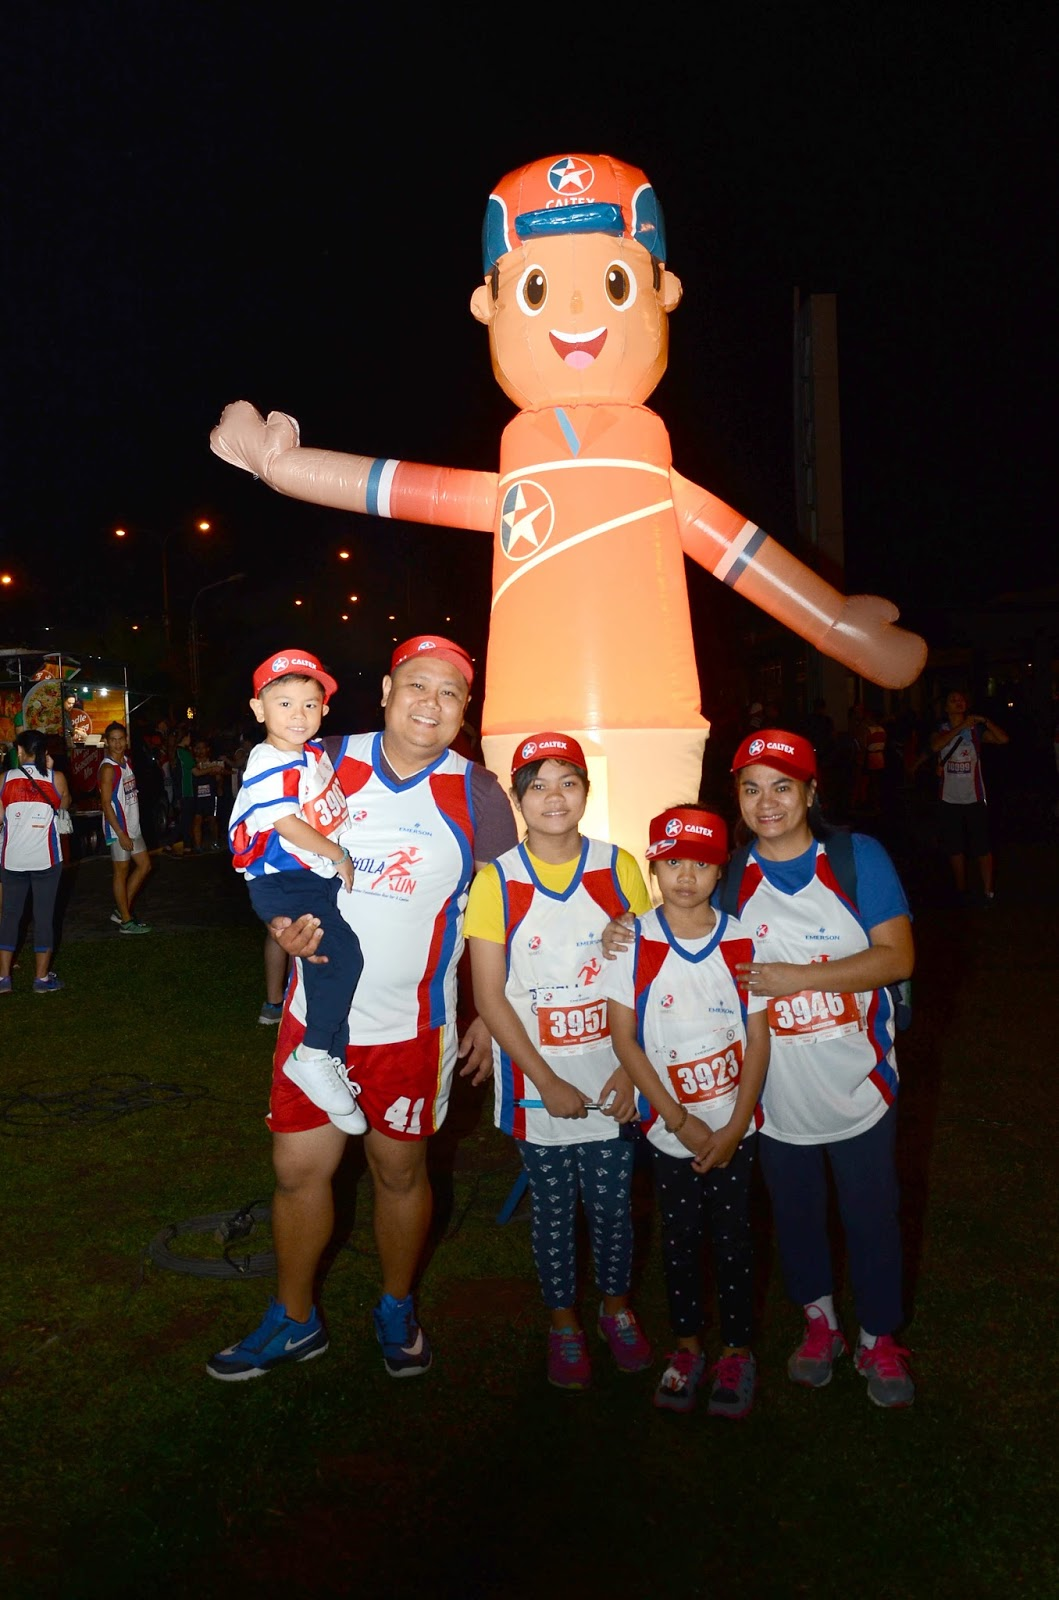 Chevron employee and family participate in the recent 6th AmCham ScholaRUN to help raise scholarship funds for deserving underprivileged students